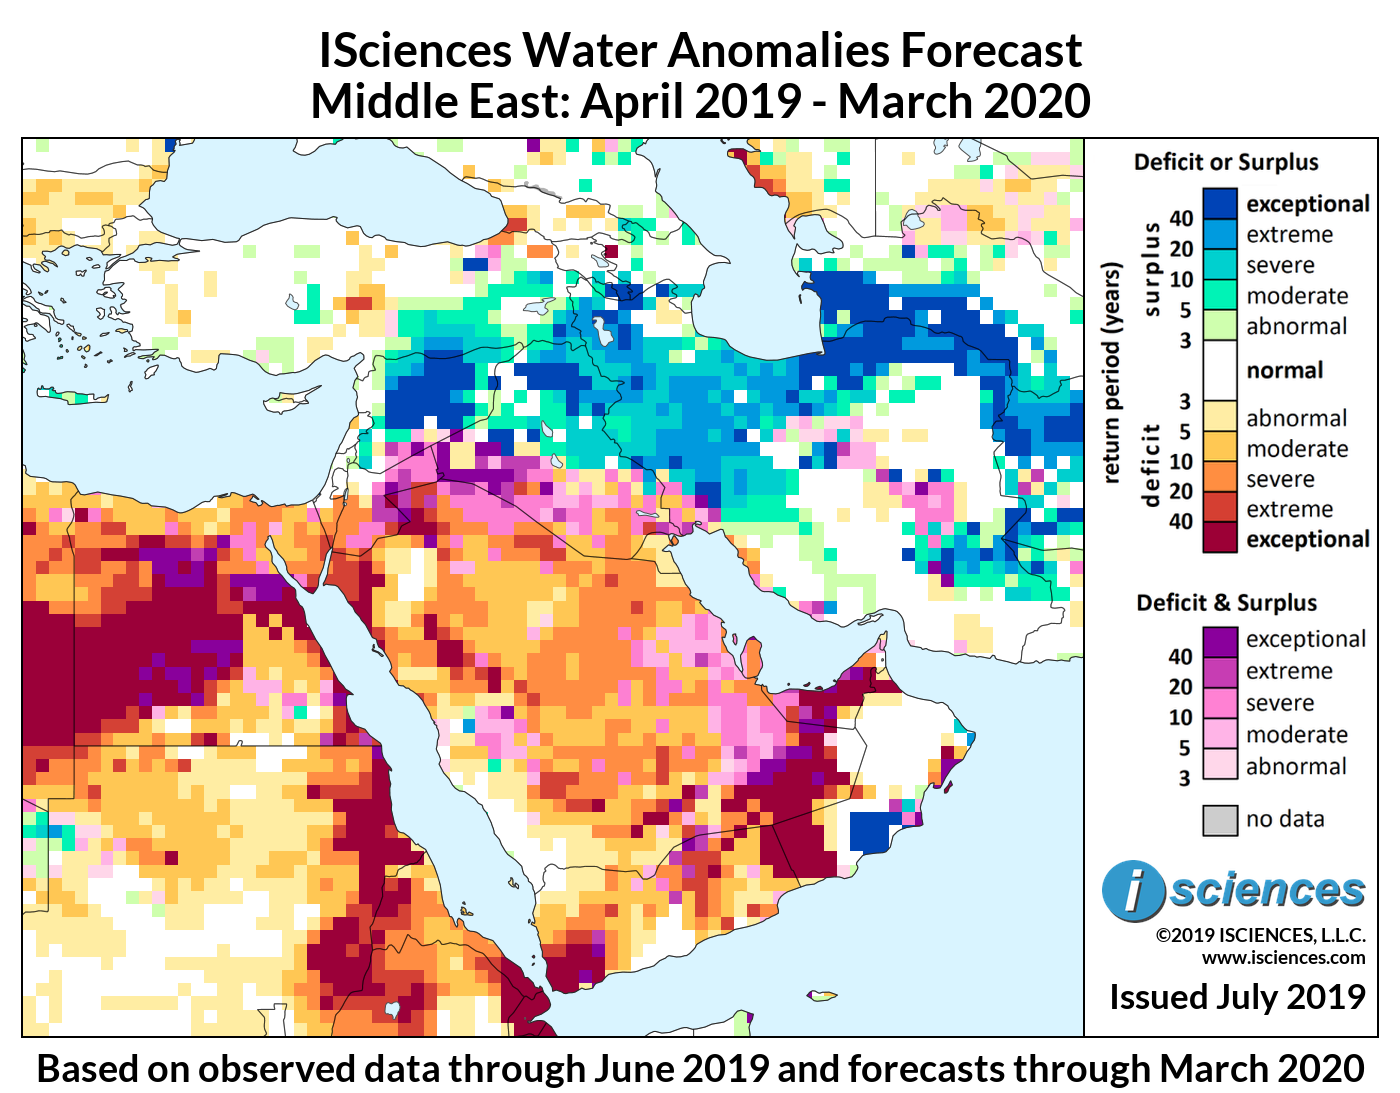 ISciences_Middle_East_Composite_Adjusted_201904-202003_12mo_panel.png